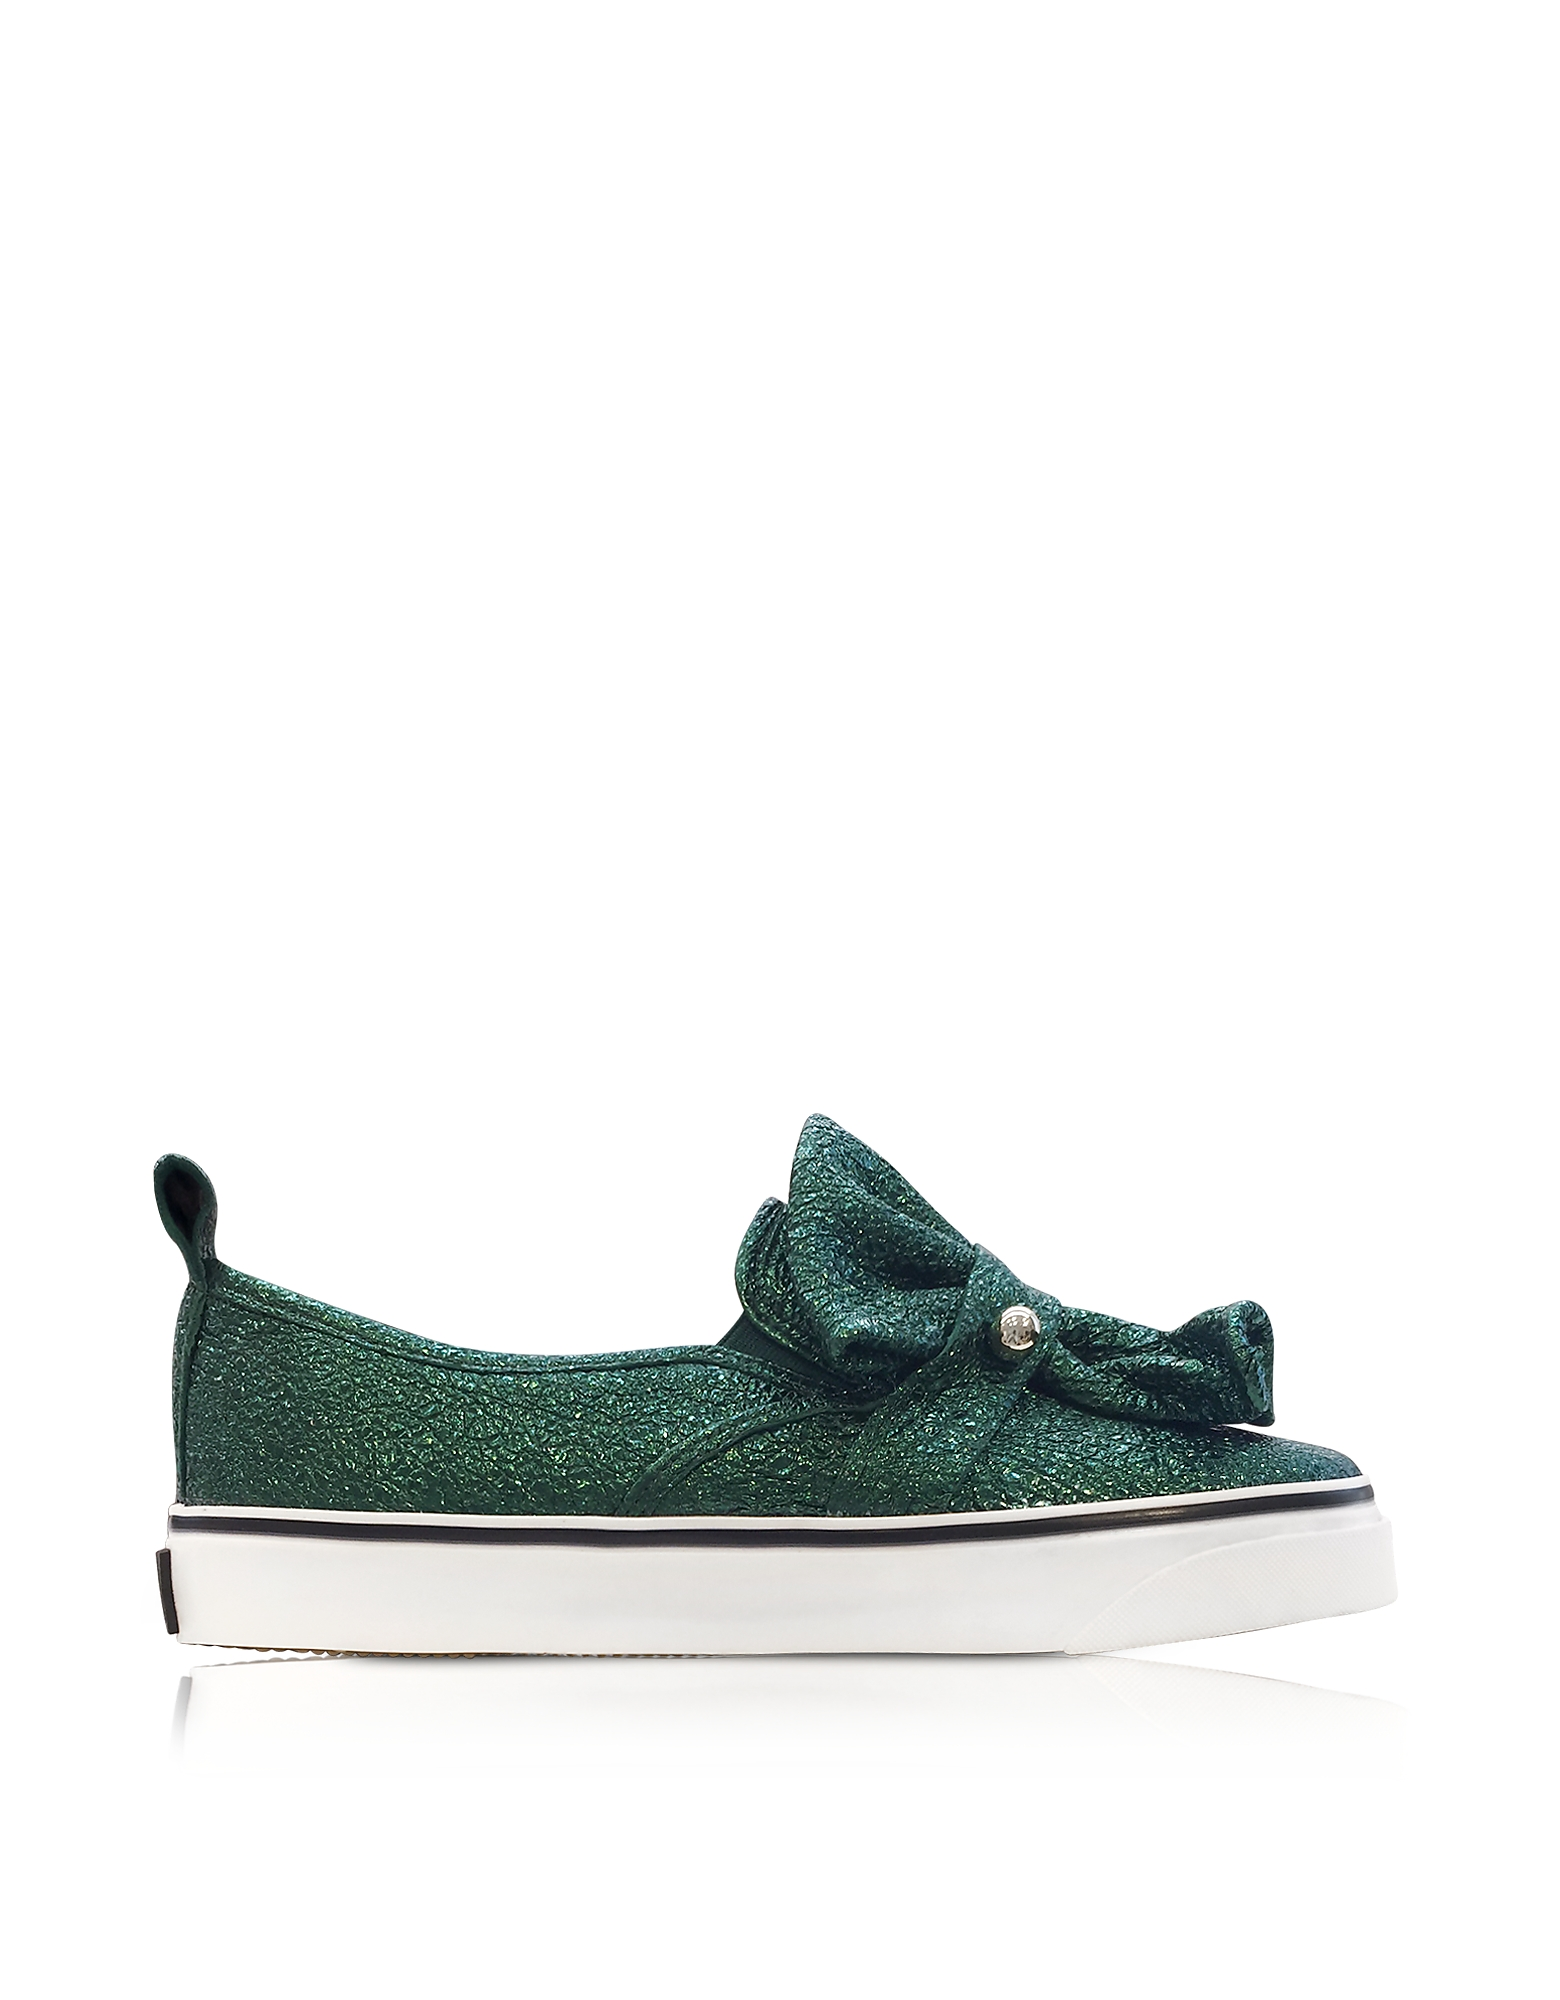 RED Valentino Shoes, Dark Green Crackled Metallic Leather Slip On Sneakers